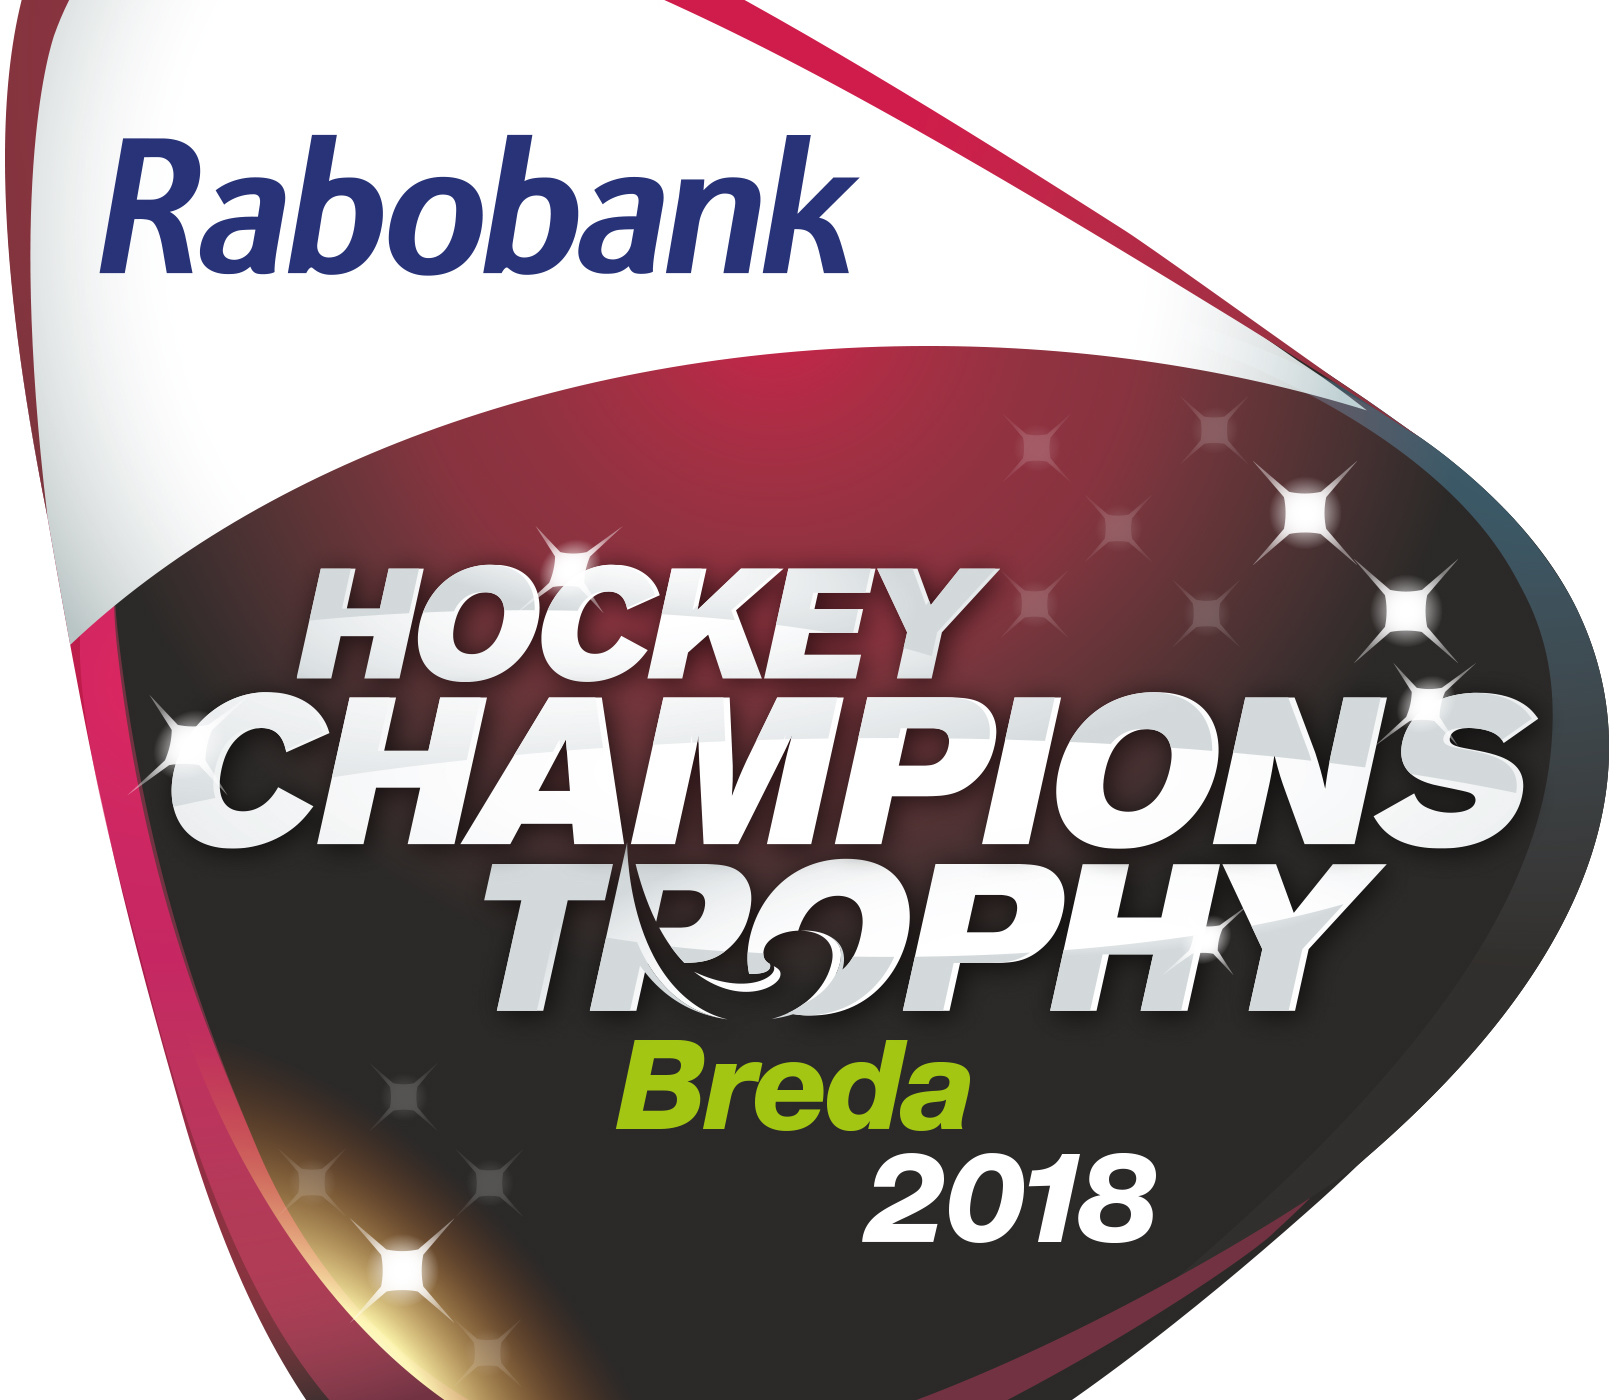 Speelschema Rabobank Hockey Champions Trophy 2018 bekend